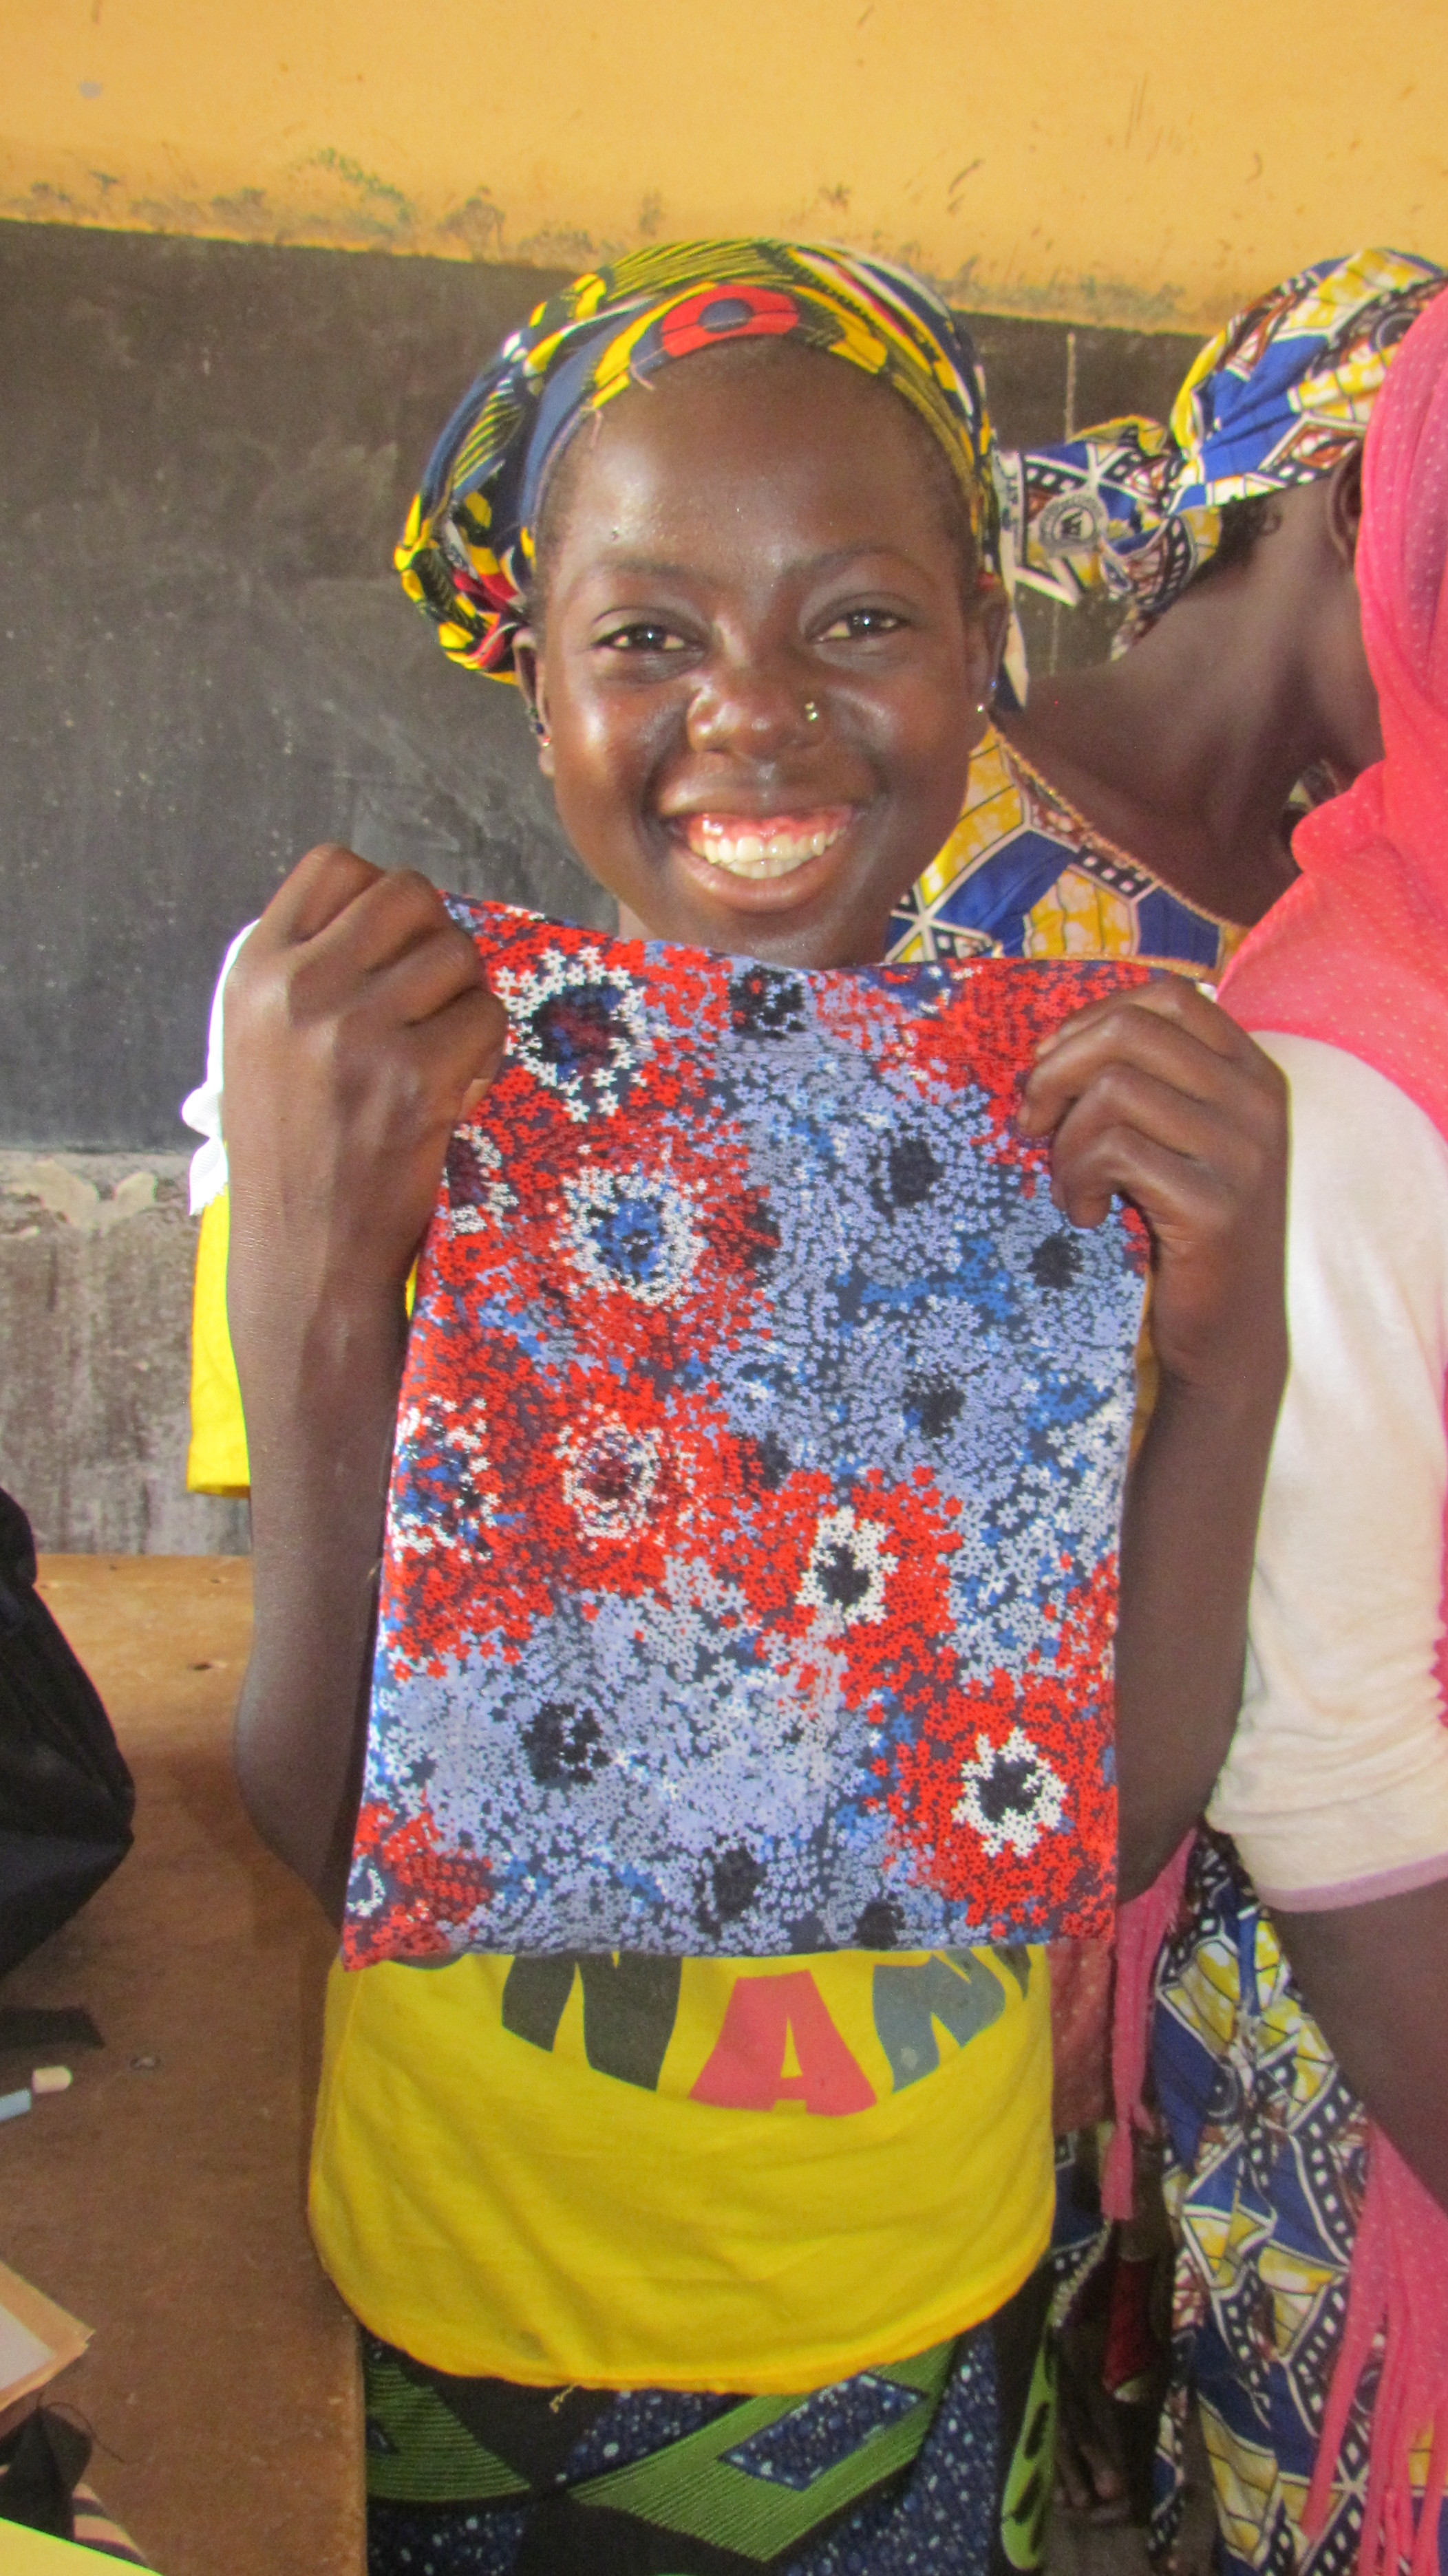 Volunteers made this girl's menstrual kit, and hundreds of others.